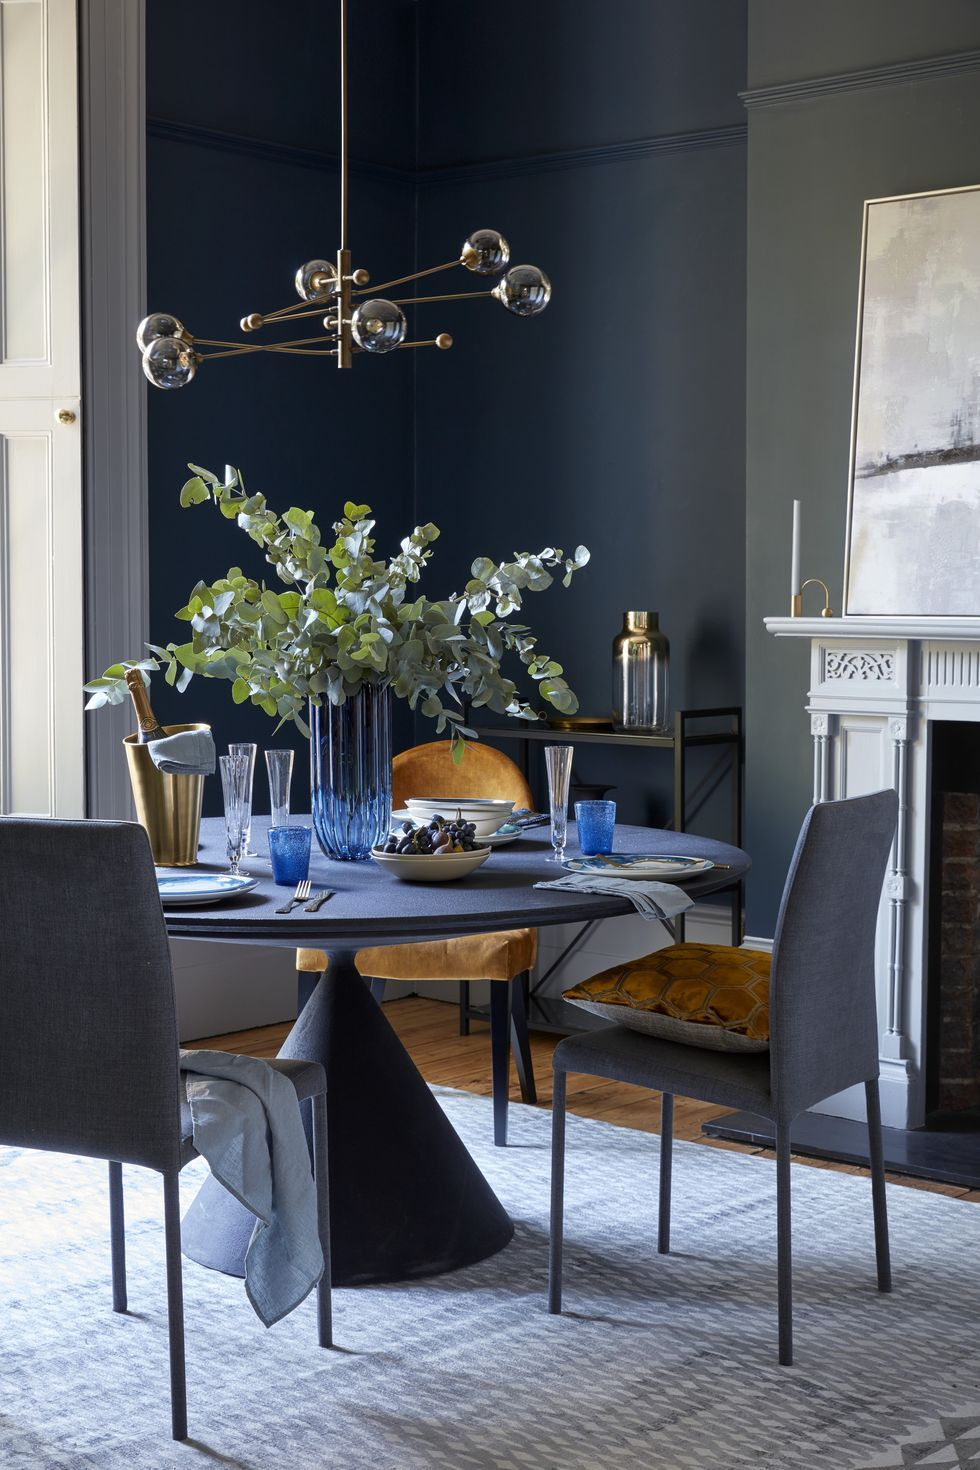 15 Small Dining Room Ideas How To, Dining Room Table Ideas Uk